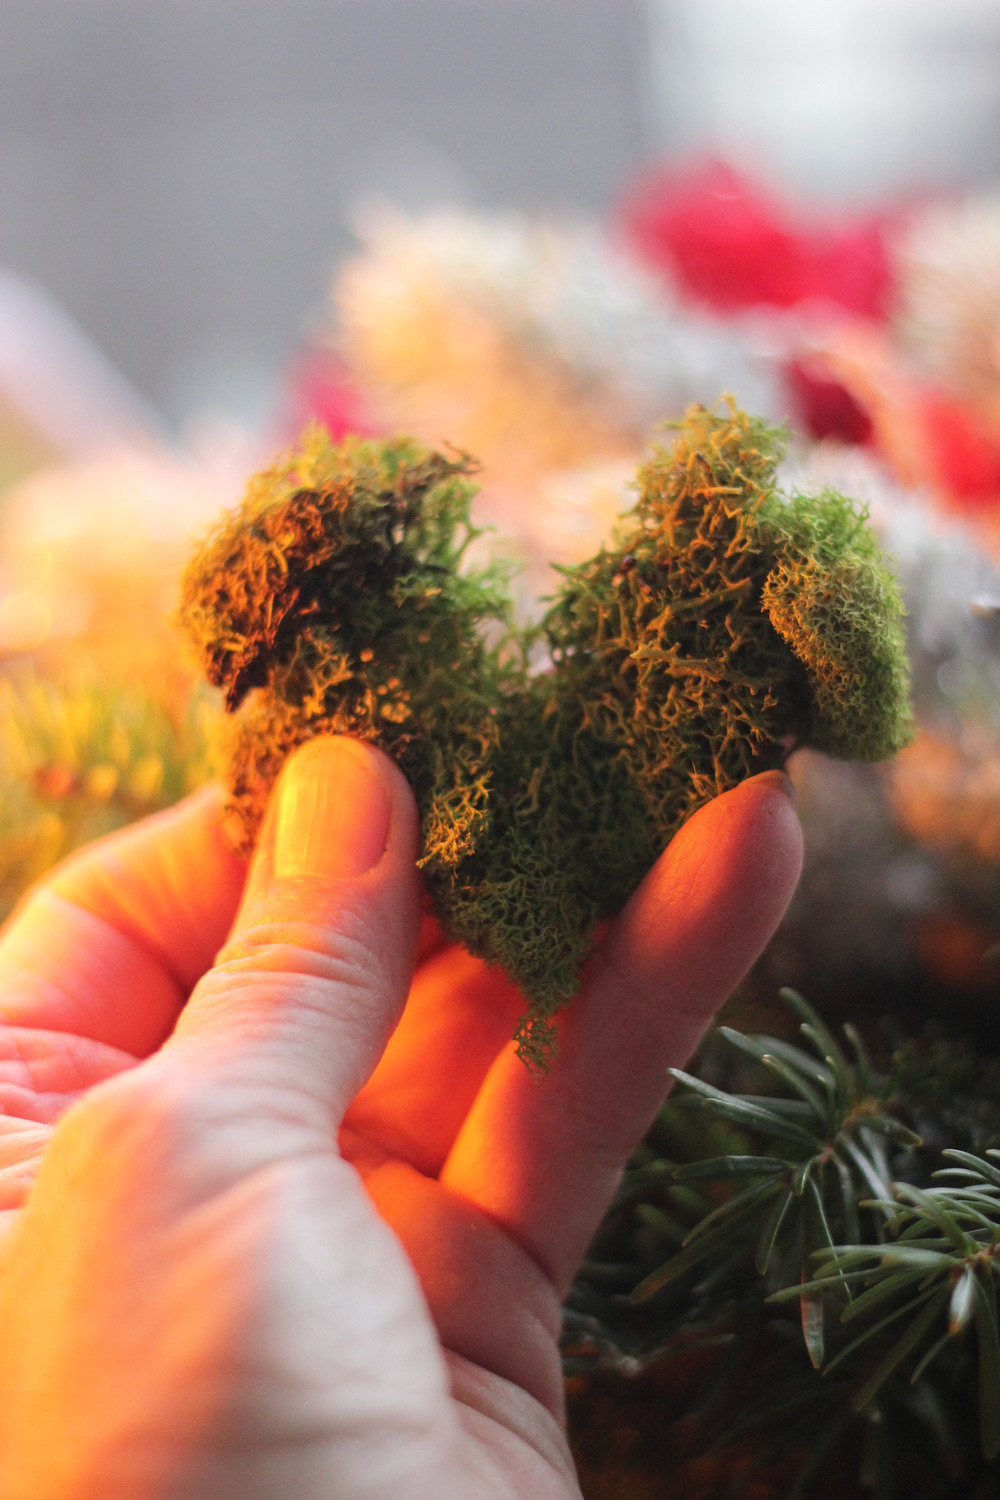 Find a heart shaped piece of moss about 3.5 inches long.